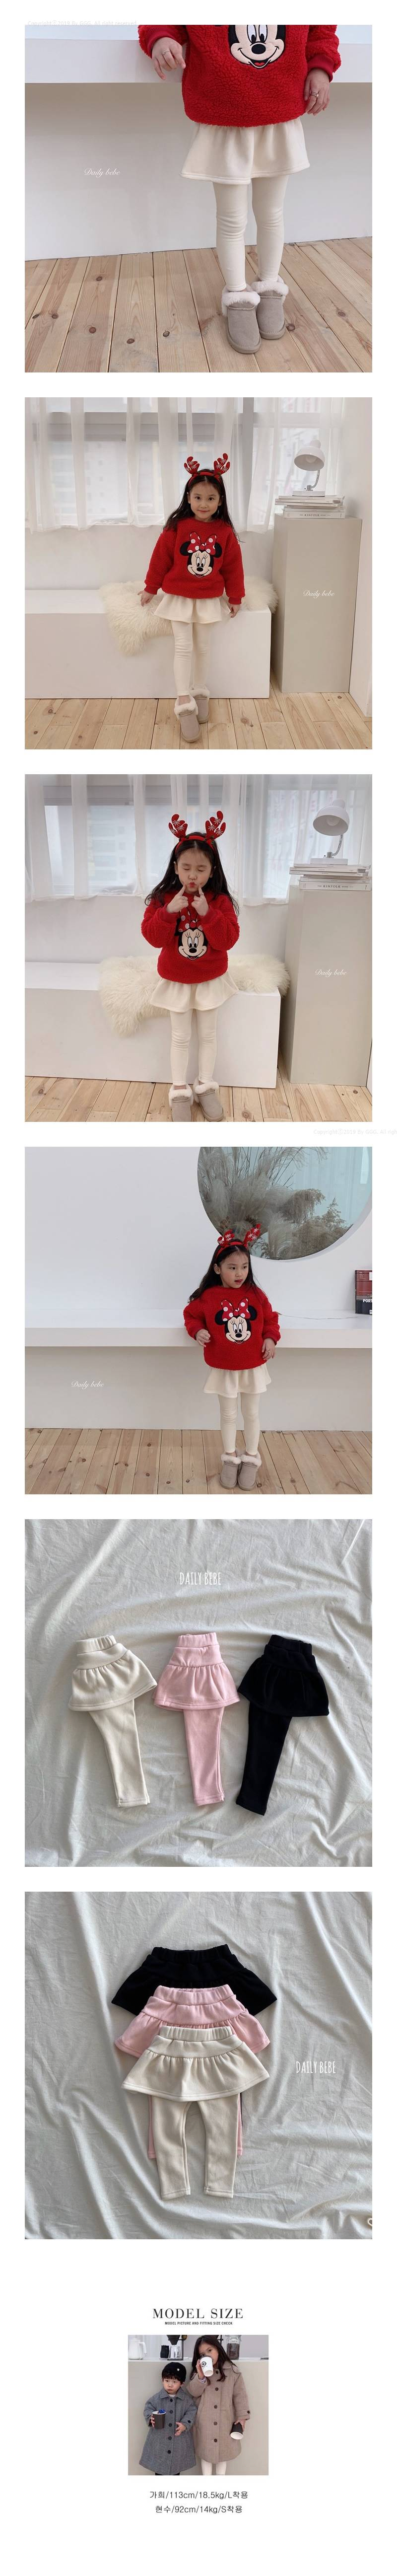 DAILY BEBE - Korean Children Fashion - #Kfashion4kids - Mink Skirt Leggings